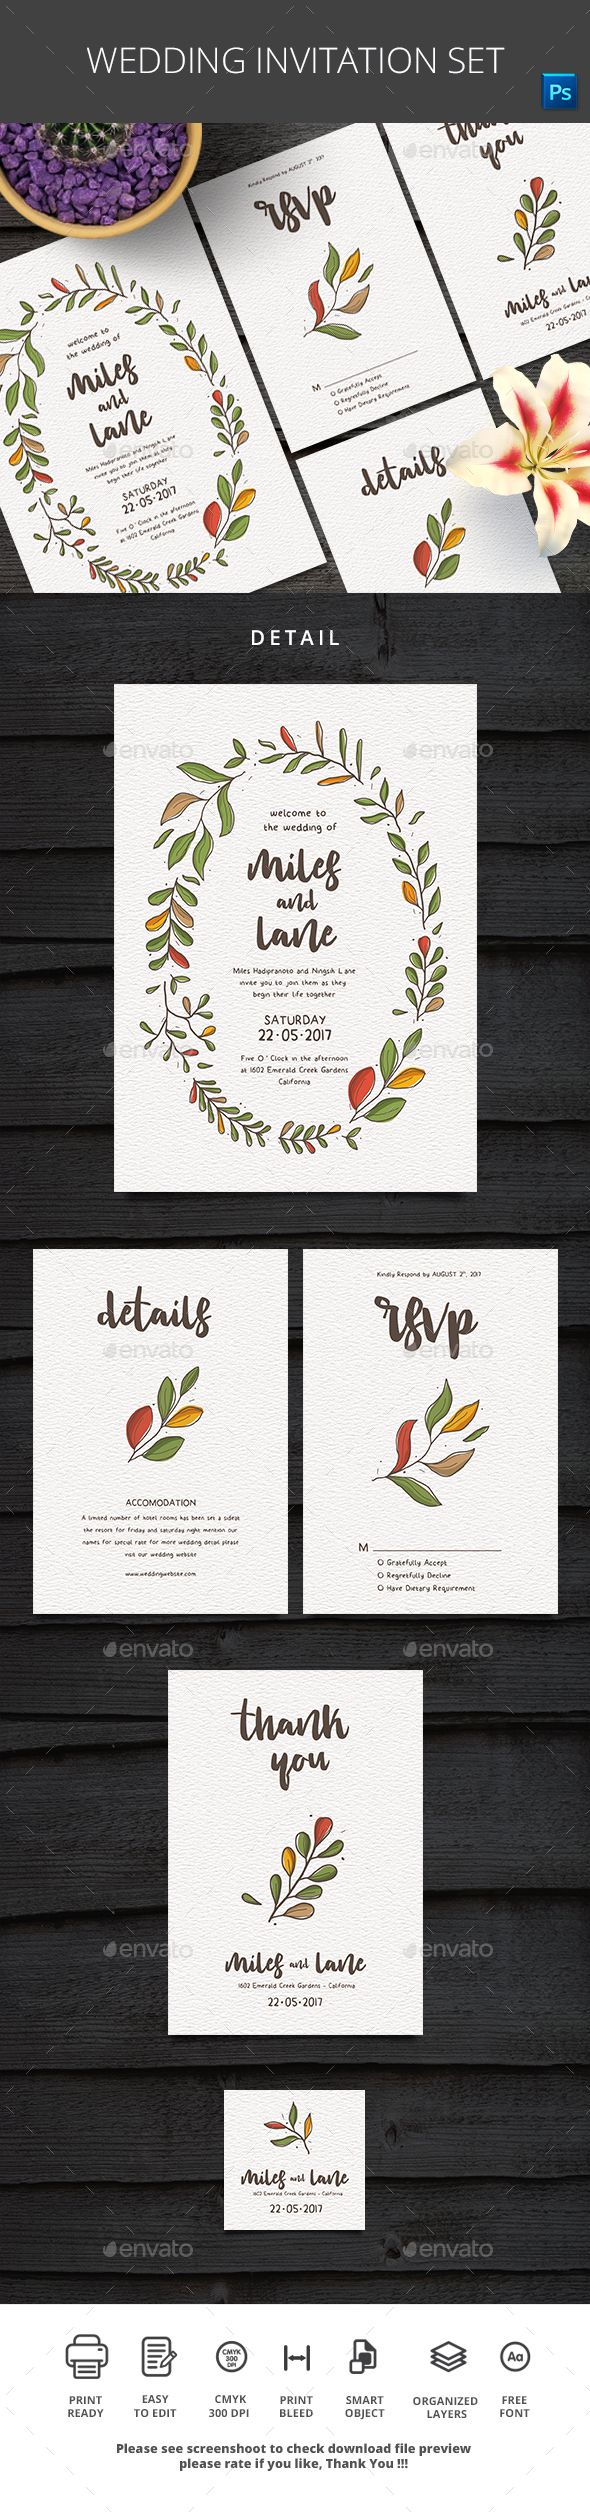 free wedding invitation psd%0A Wedding Invitation Set